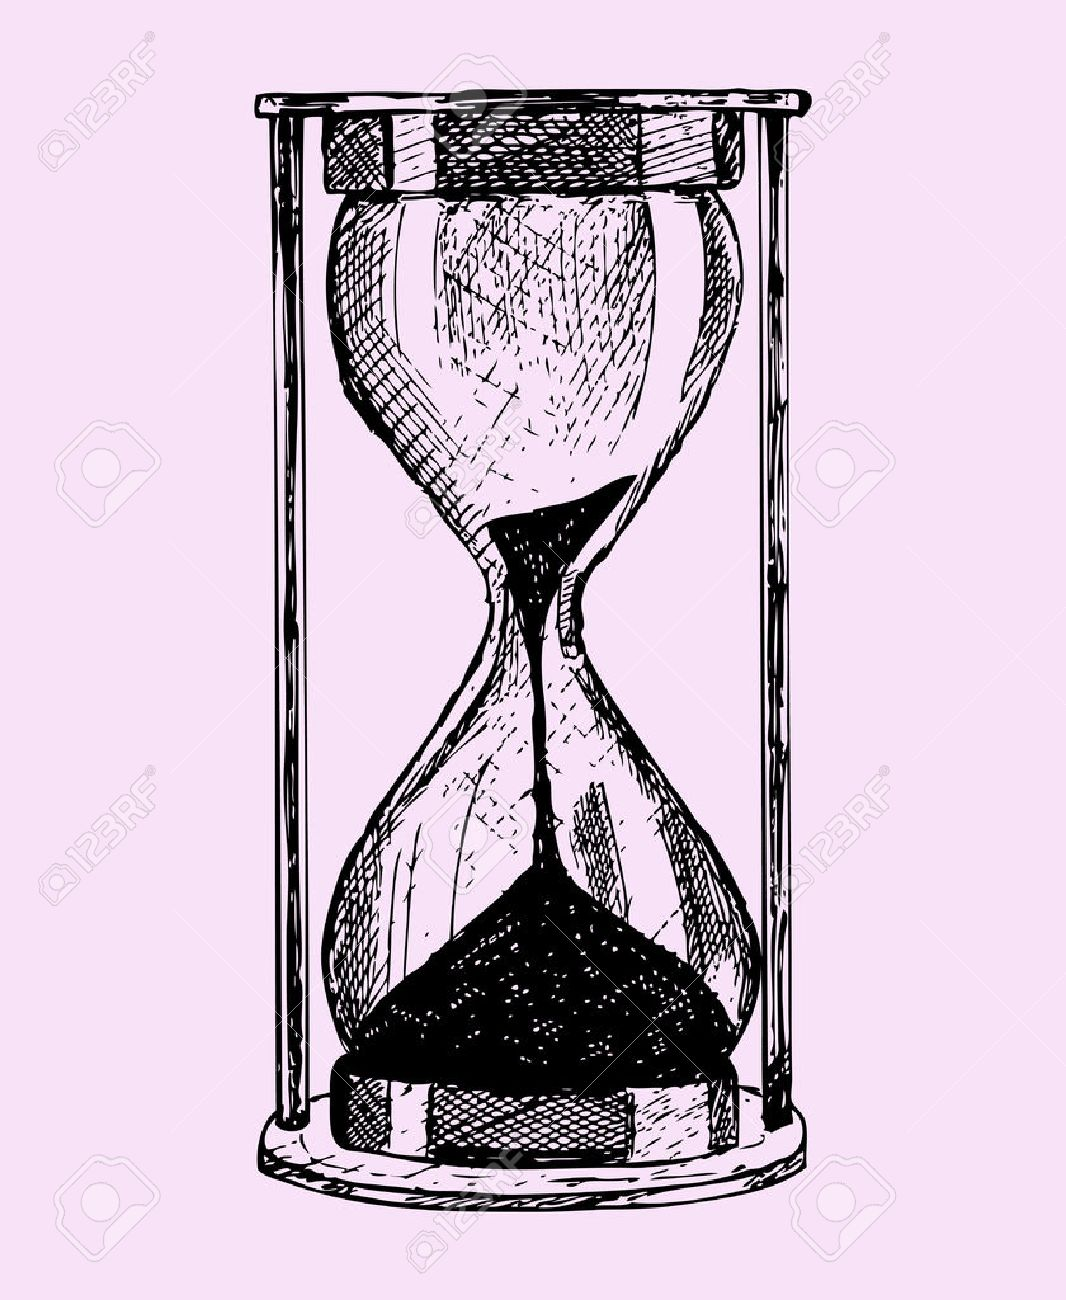 hourglass, doodle style, sketch illustration isolated on pink background - 50055750